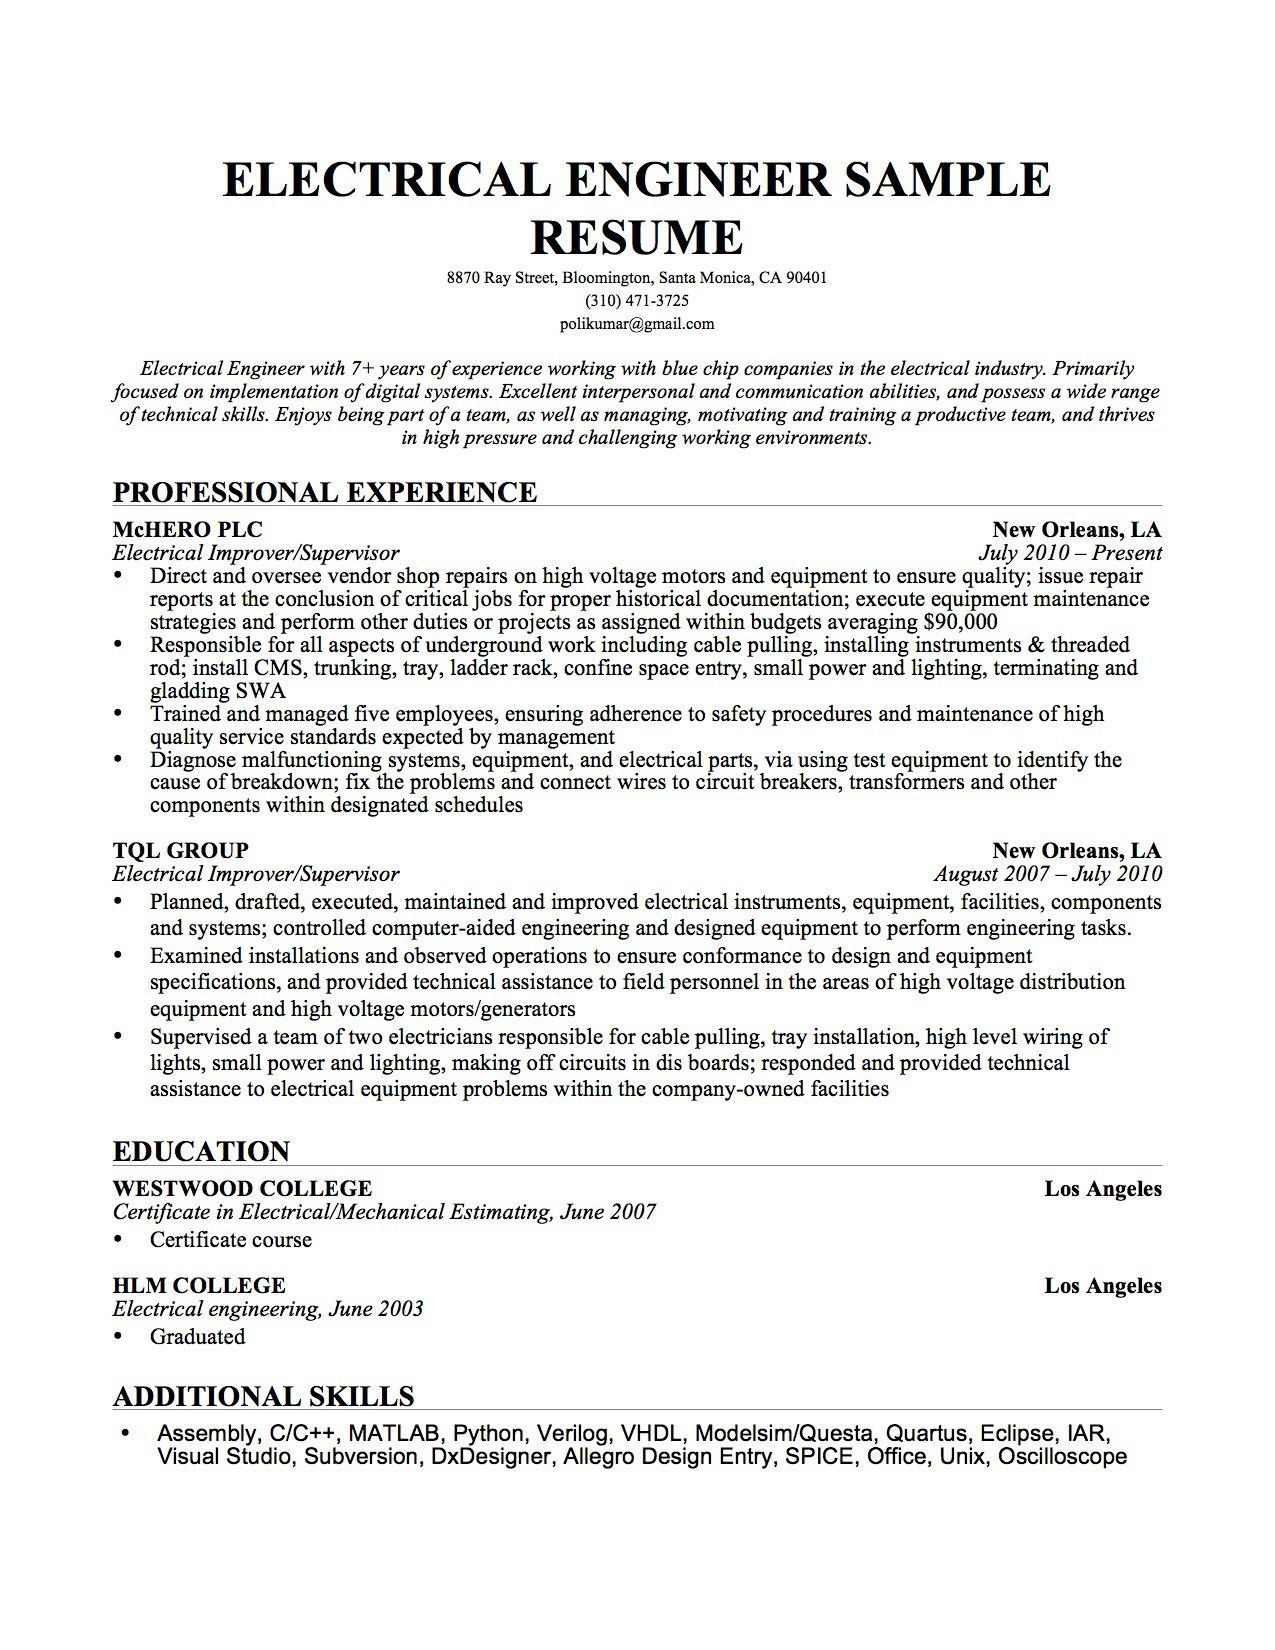 engineer sample resume equipment fixed biomedical carpenter template microsoft word summary statement for career change warehouse manager achievements samples